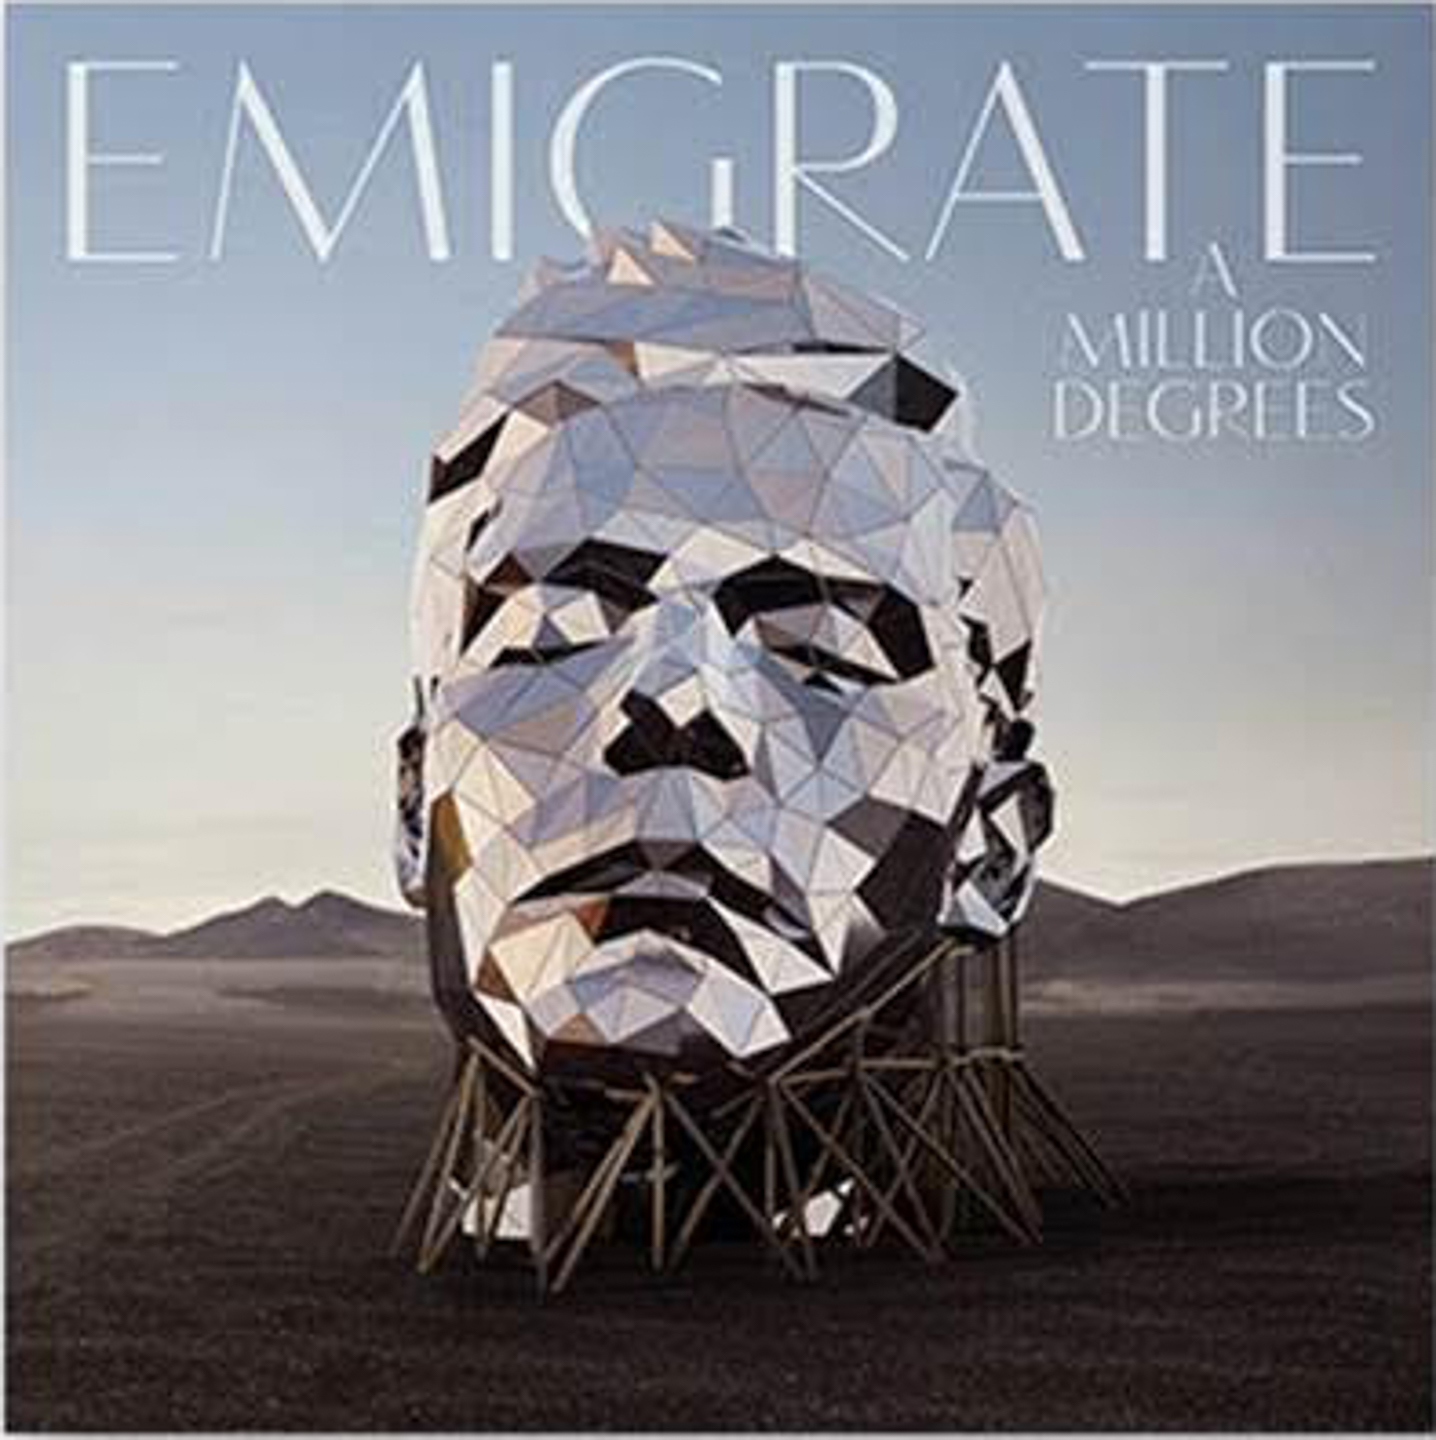 A Million Degrees Emigrate